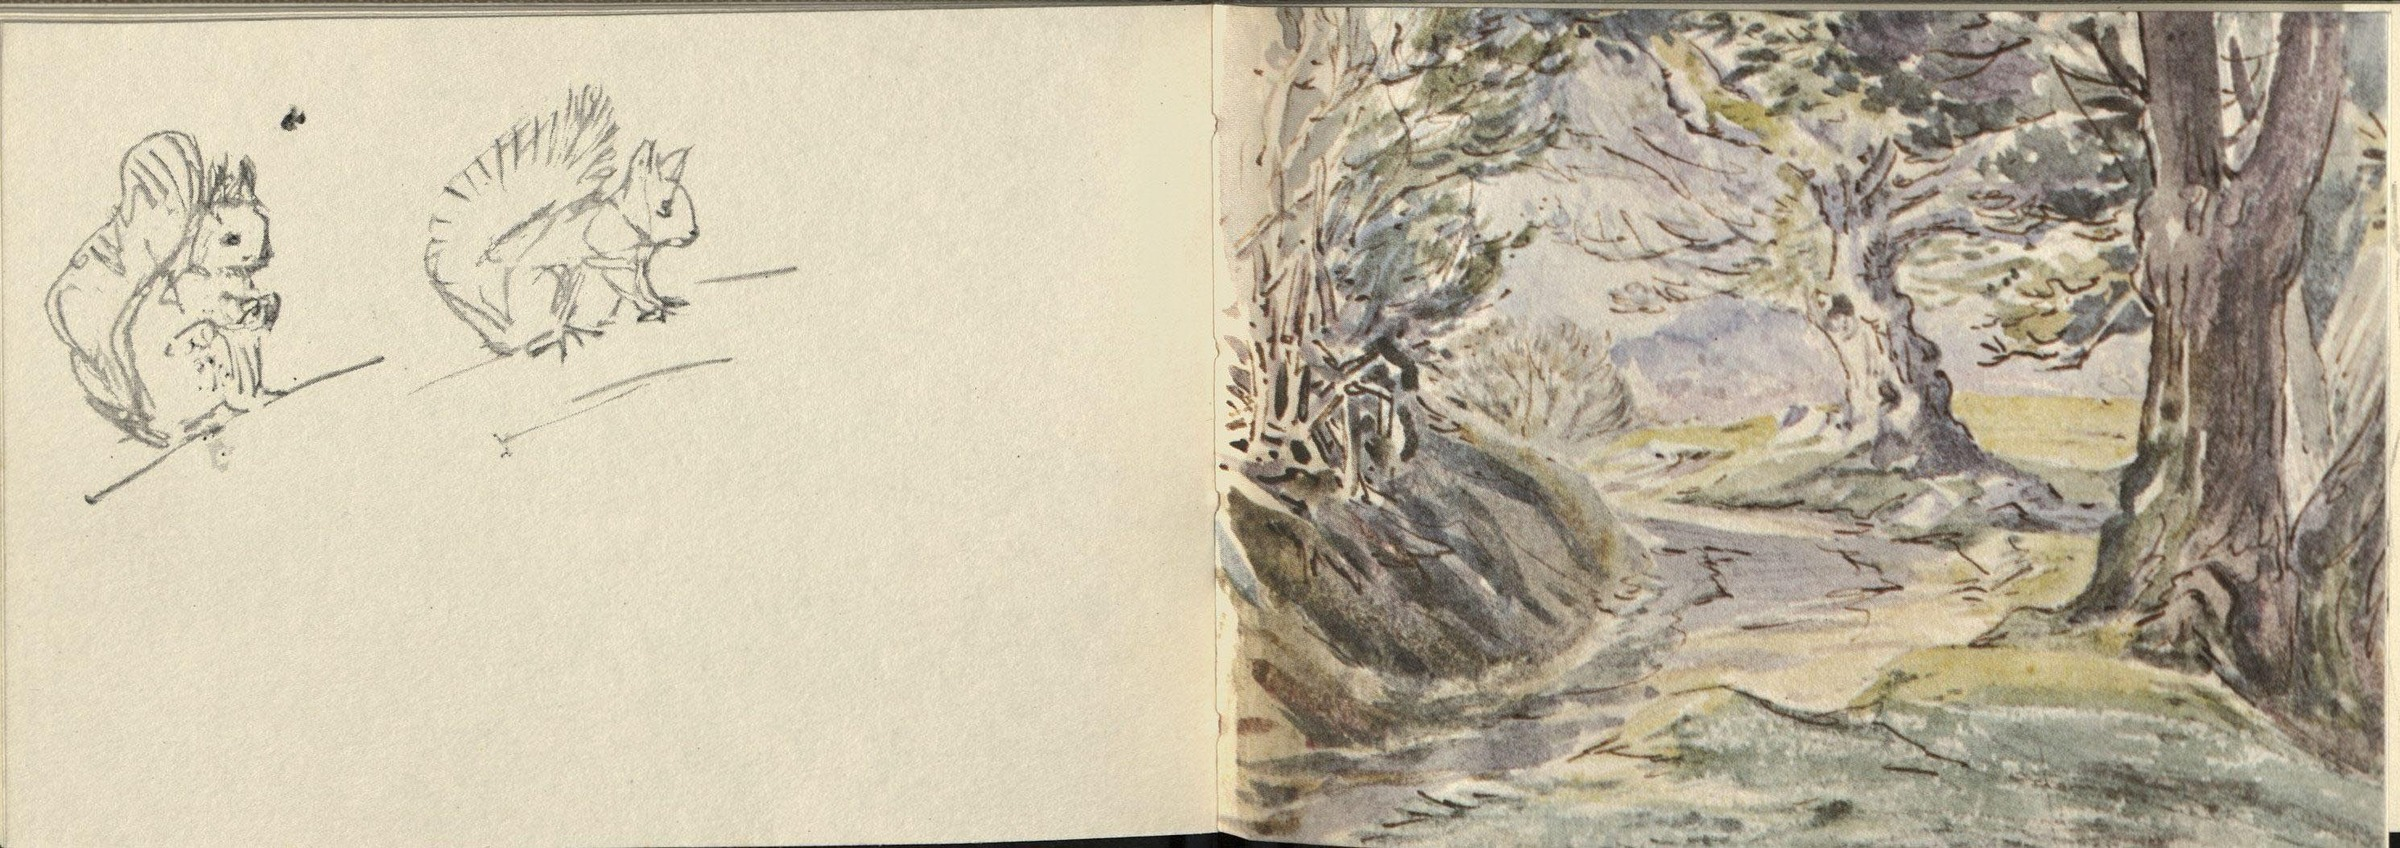 Interior of Beatrix Potter's 1903 Derwentwater Skechbook (facsimile)